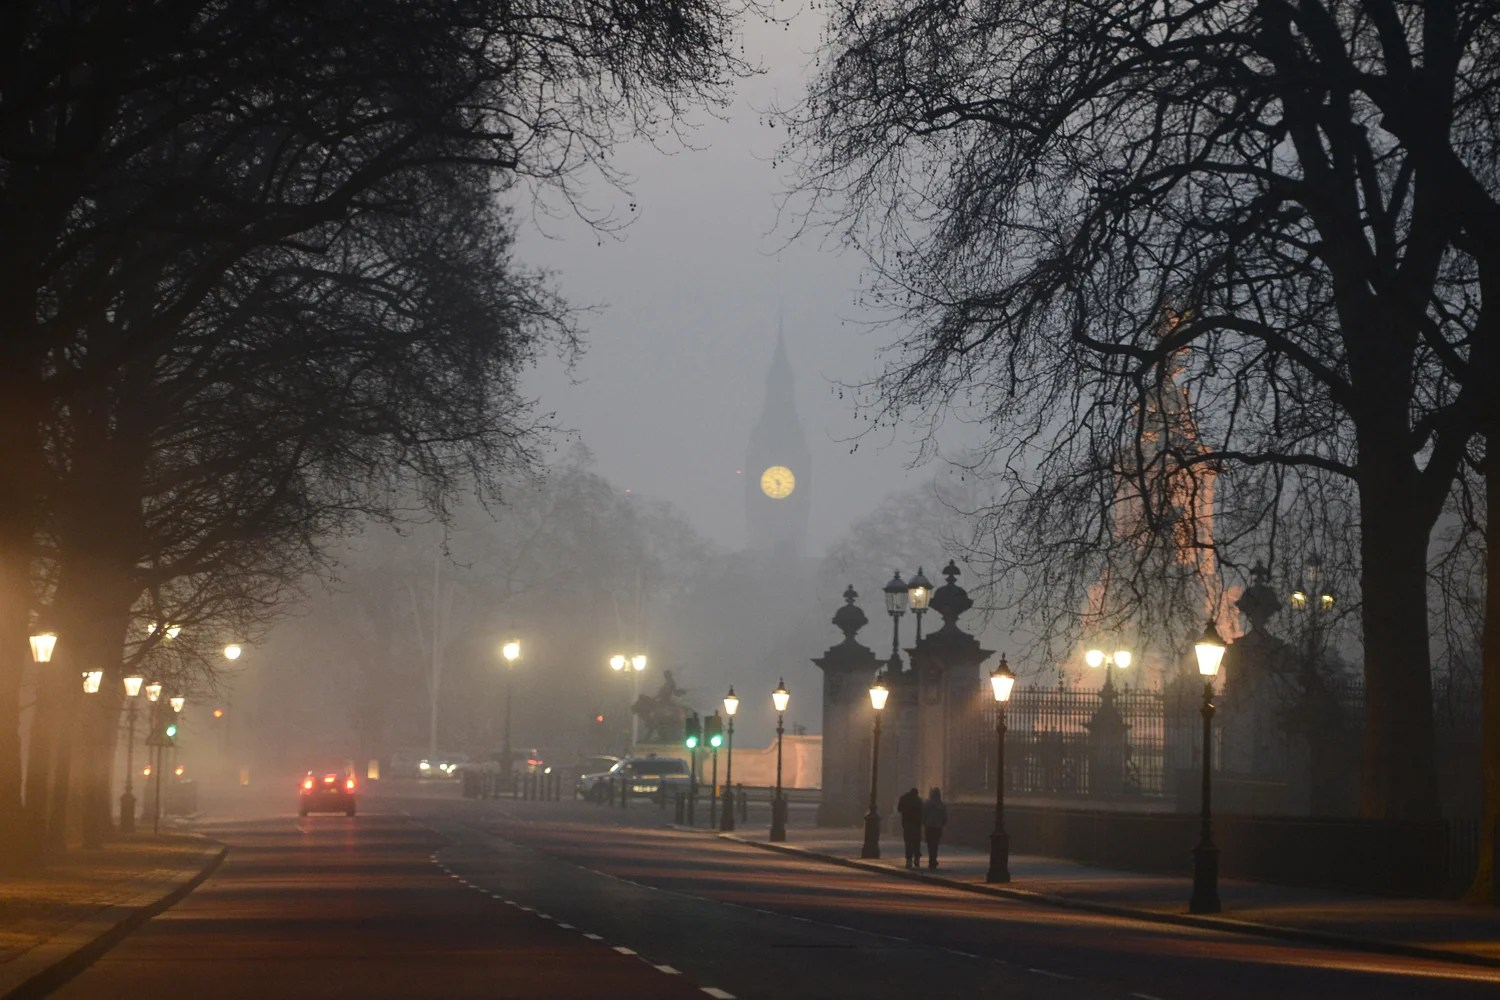 UK flights cancelled due to thick early morning fog  London Evening Standard